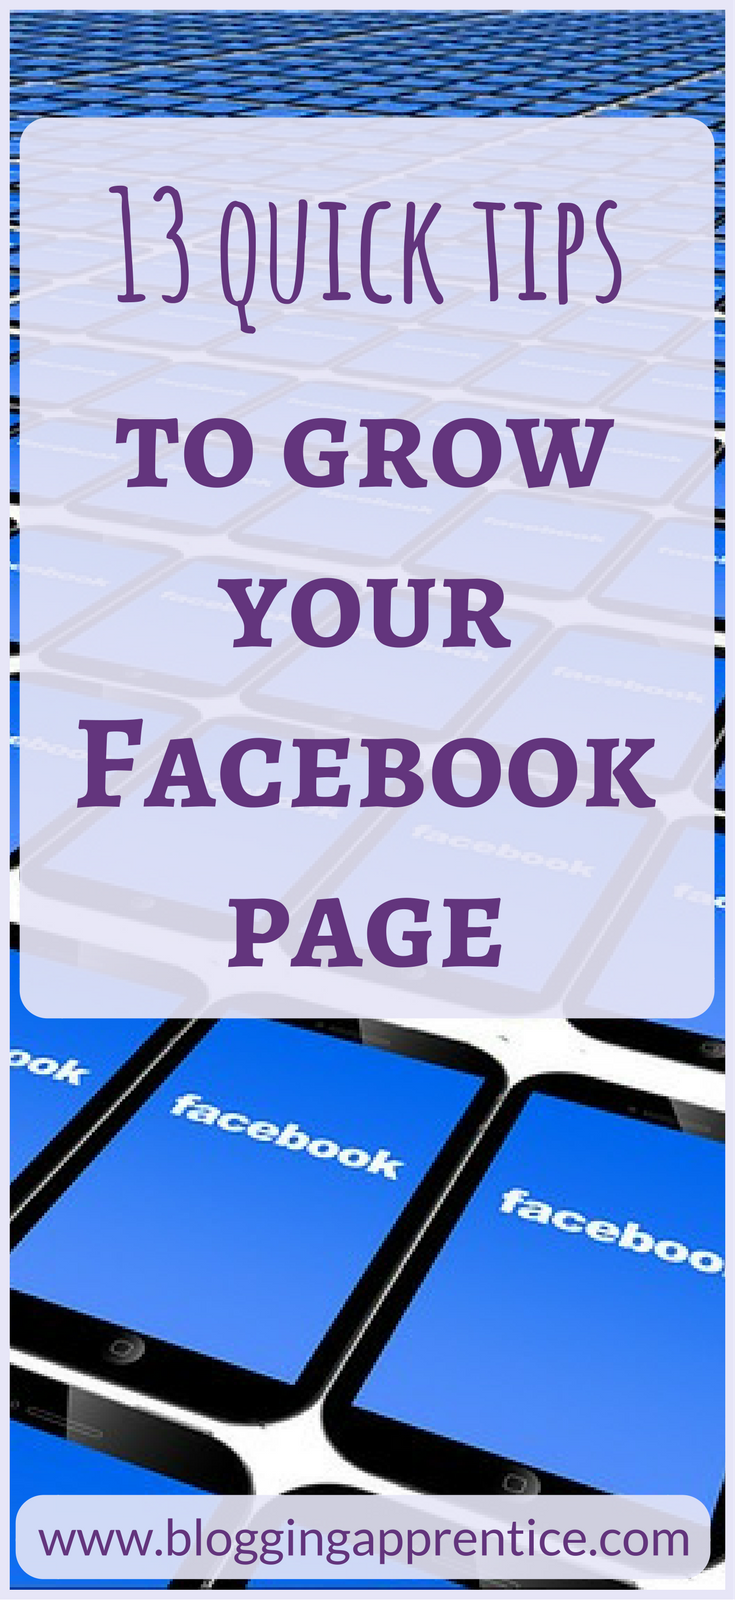 13 quick tips to grow your Facebook page - on bloggingapprentice.com